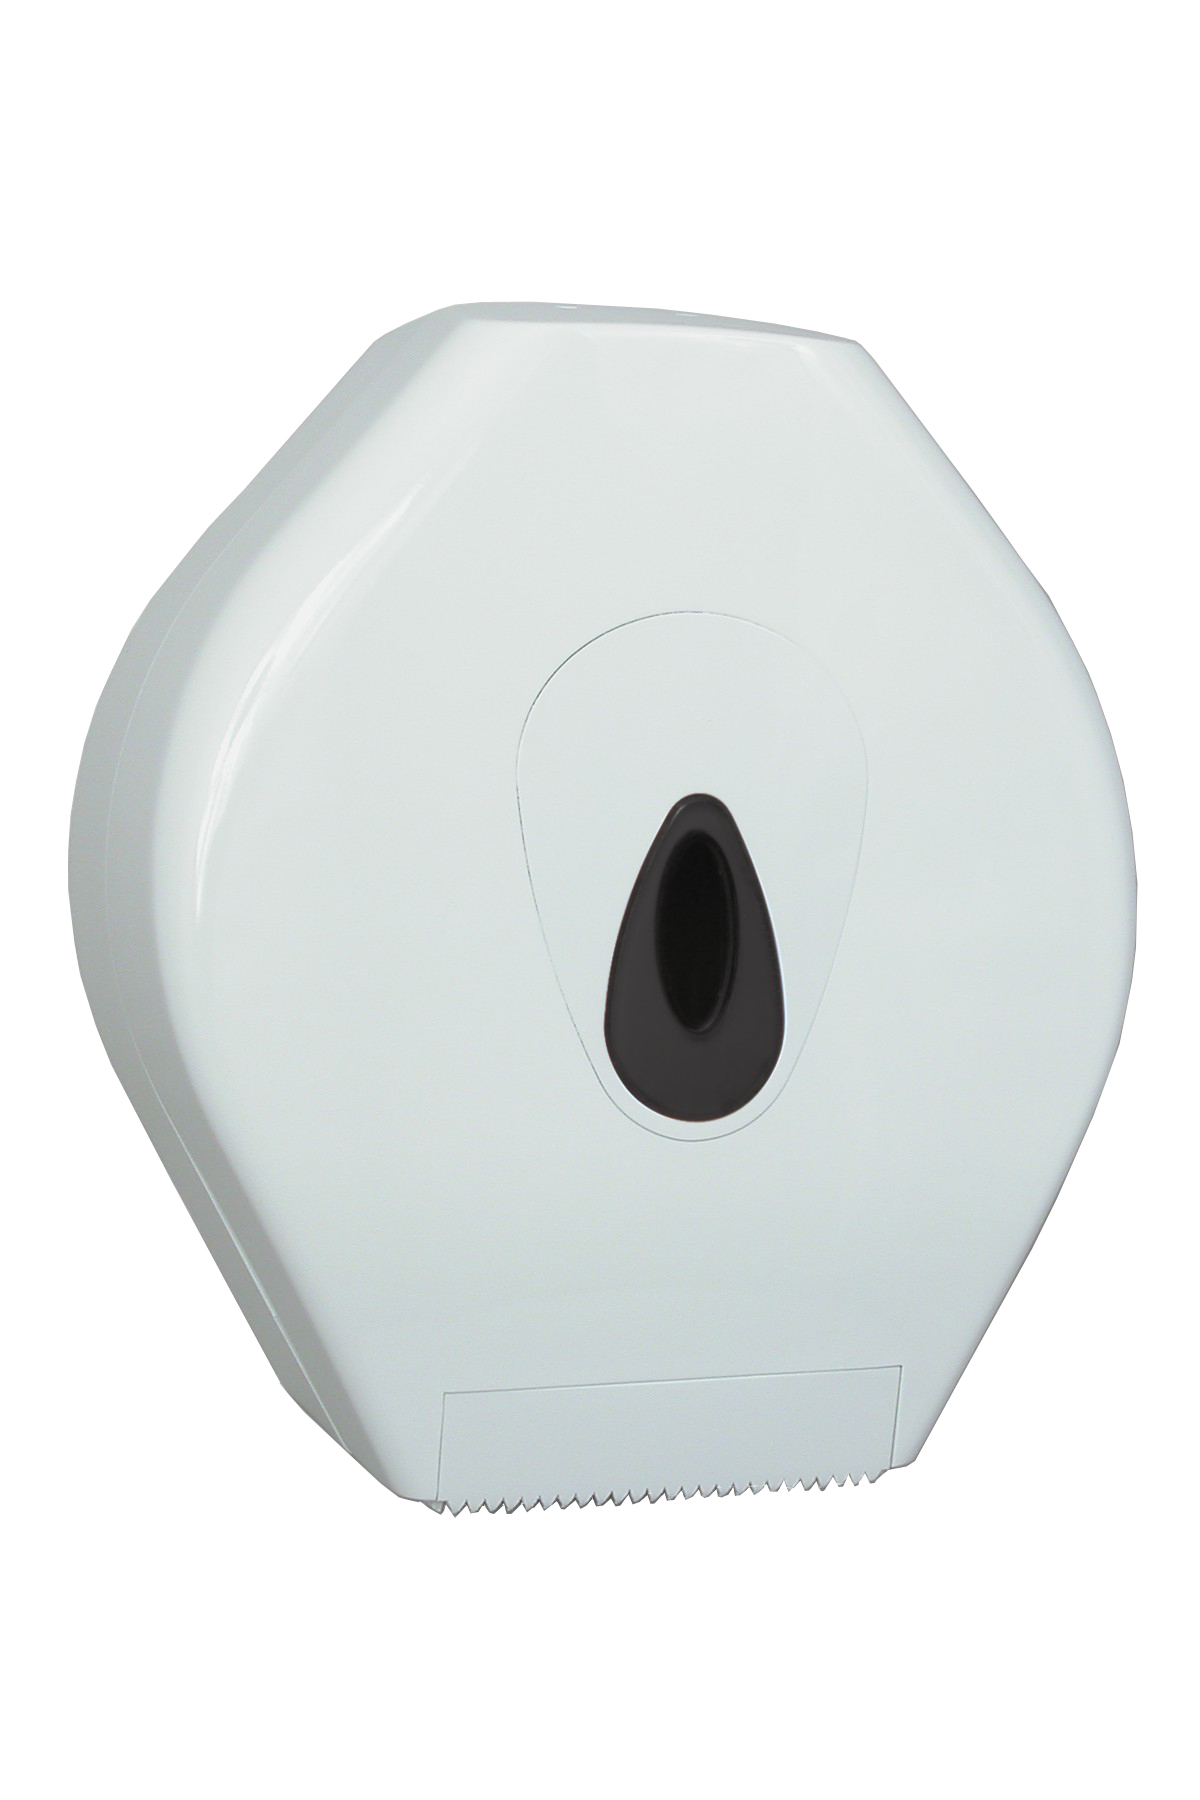 ALL CARE Dispenserline - Toiletroldispenser Midi Jumbo PL